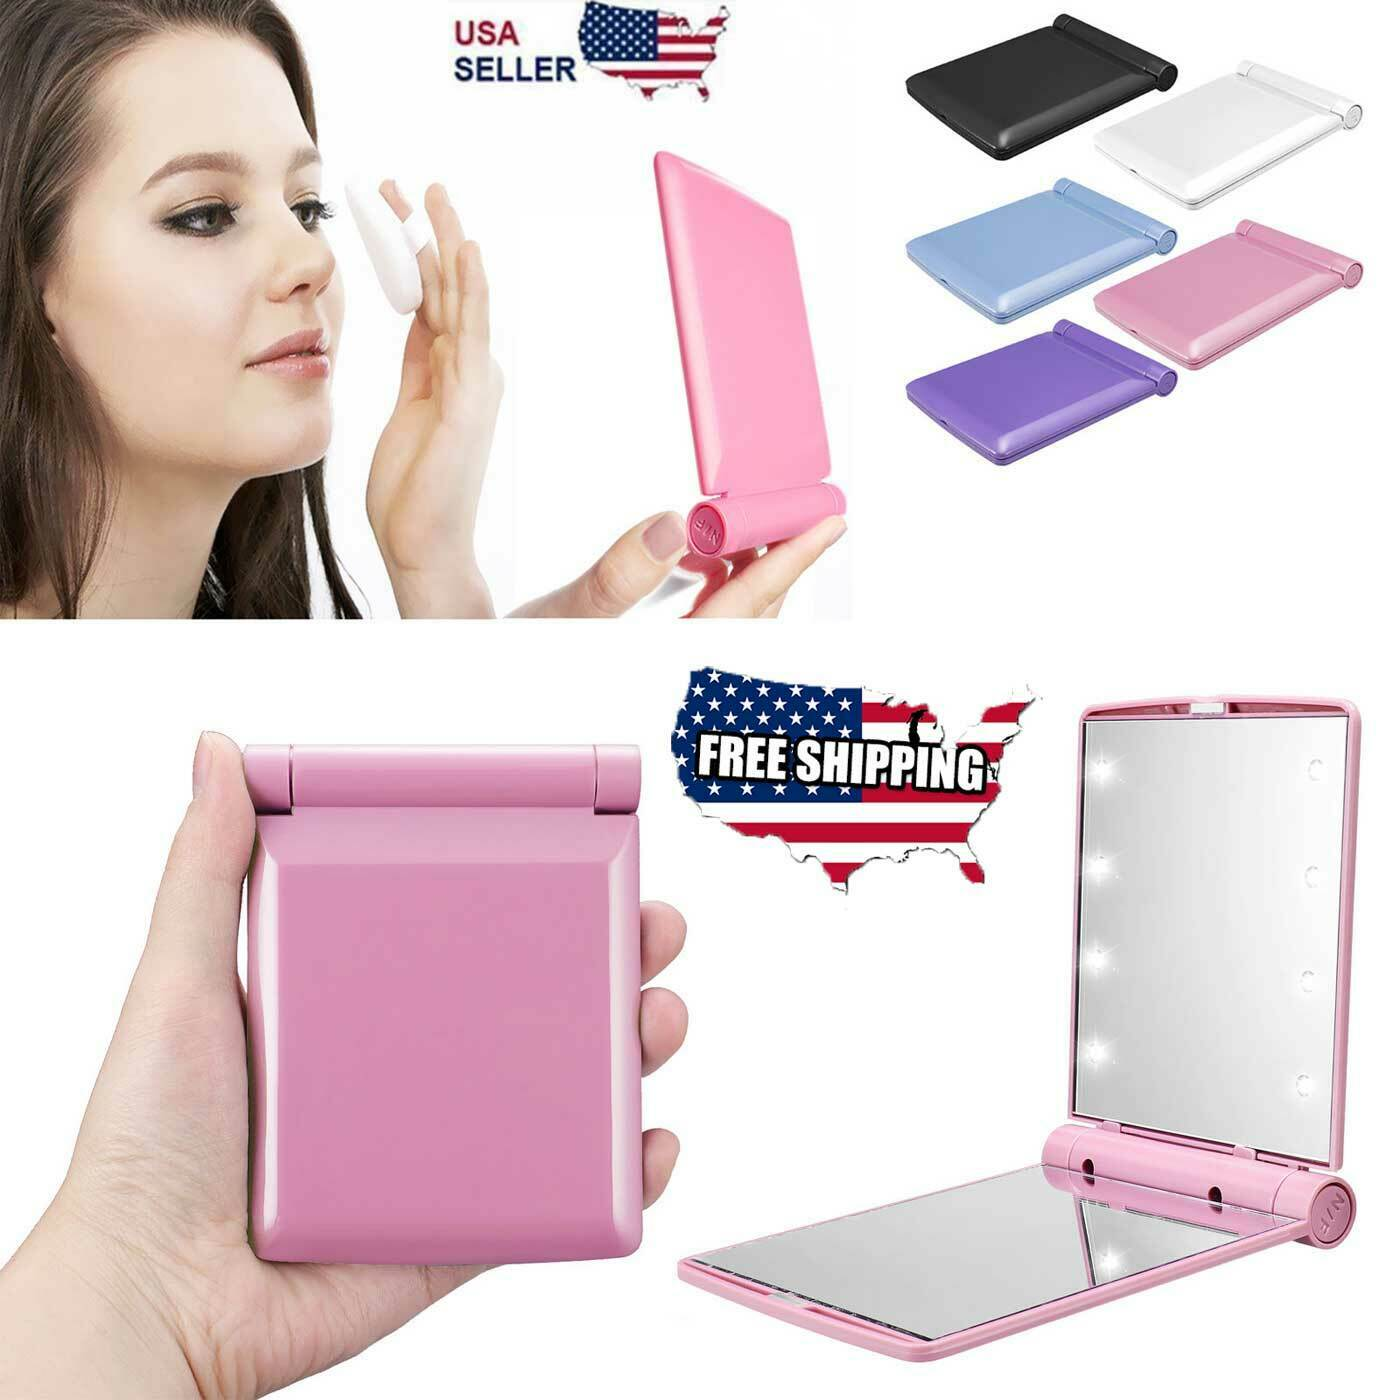 Makeup Compact Mirror Cosmetic Folding Portable Pocket with 8 LED Lights Lamps Health & Beauty